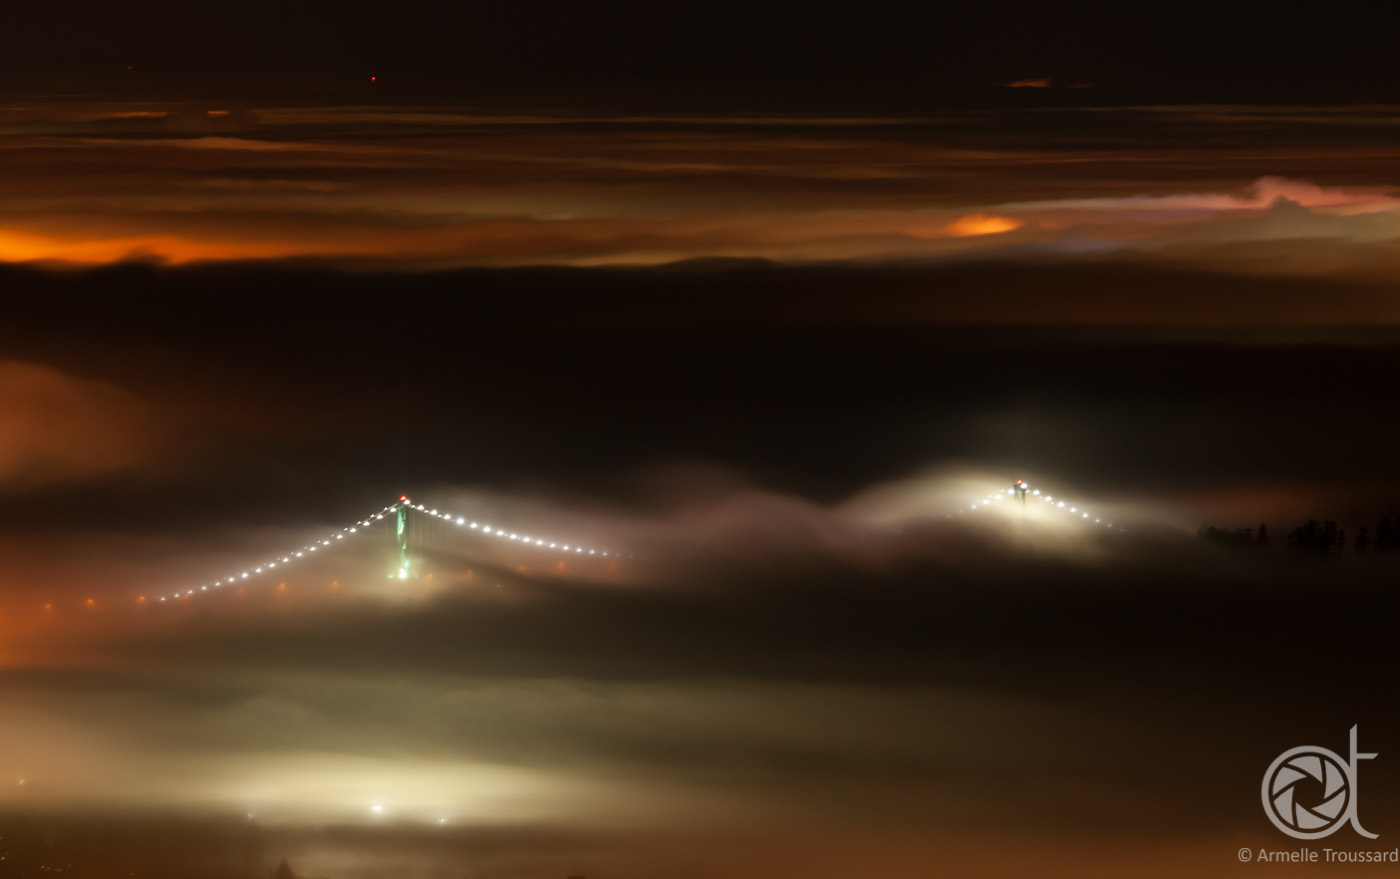 Inversion and Lions gate brigde, Vancouver, British Columbia, Canada